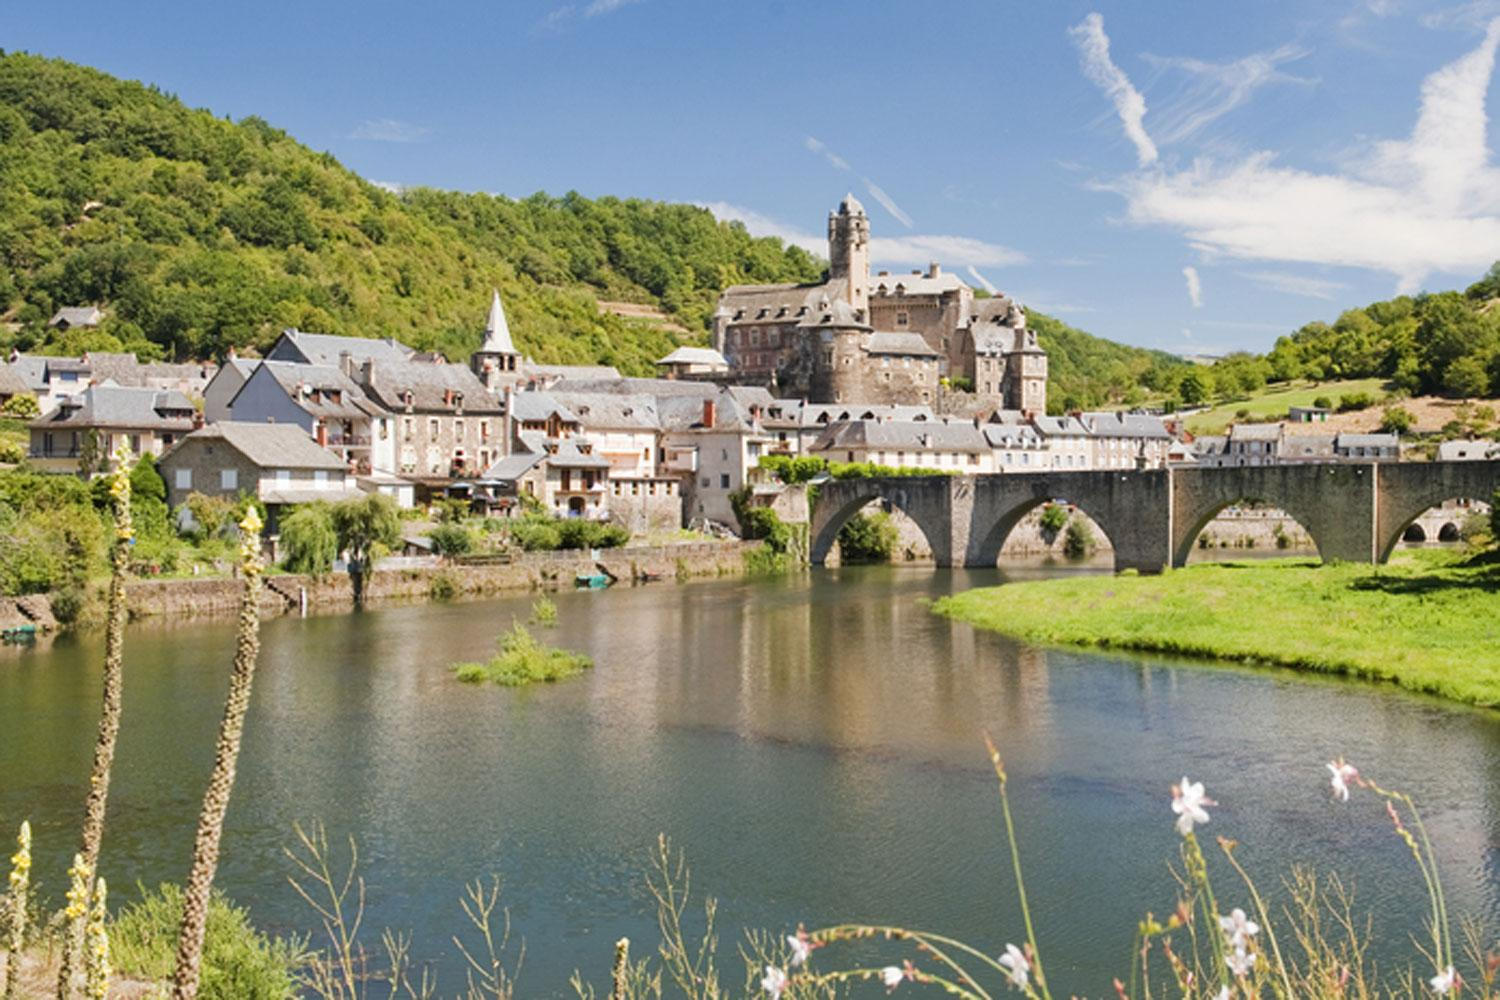 Estaing, with its Gothic bridge